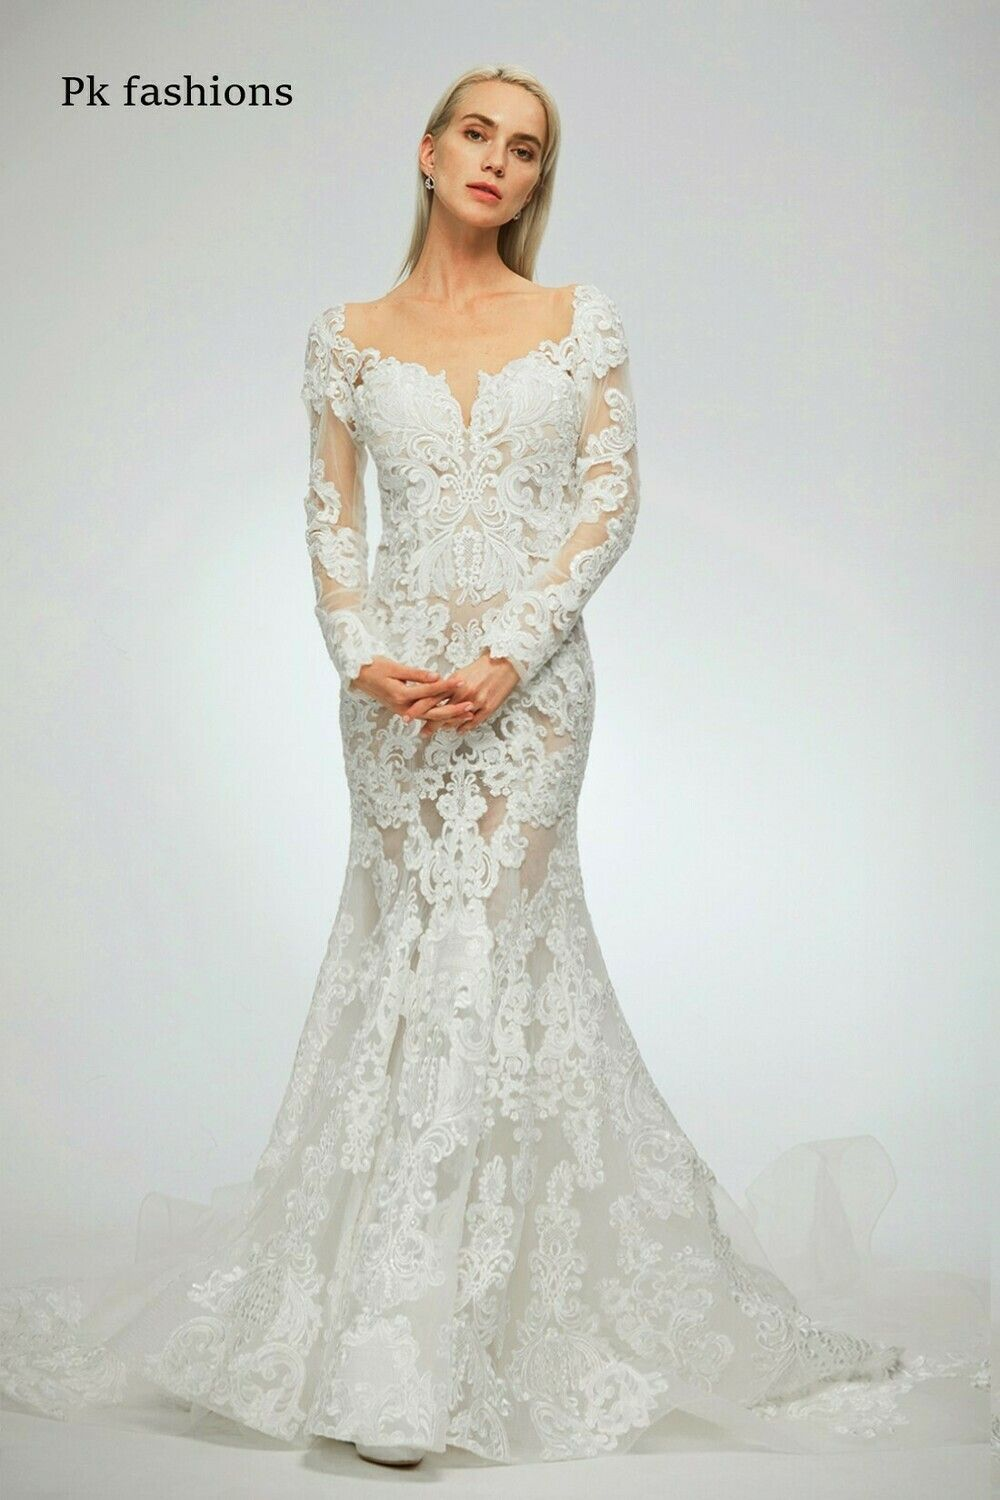 Kp Fashions Lace Wedding Dress Size 12 In 2020 Size 12 Wedding Dress Wedding Dress Couture Boston Wedding Dress